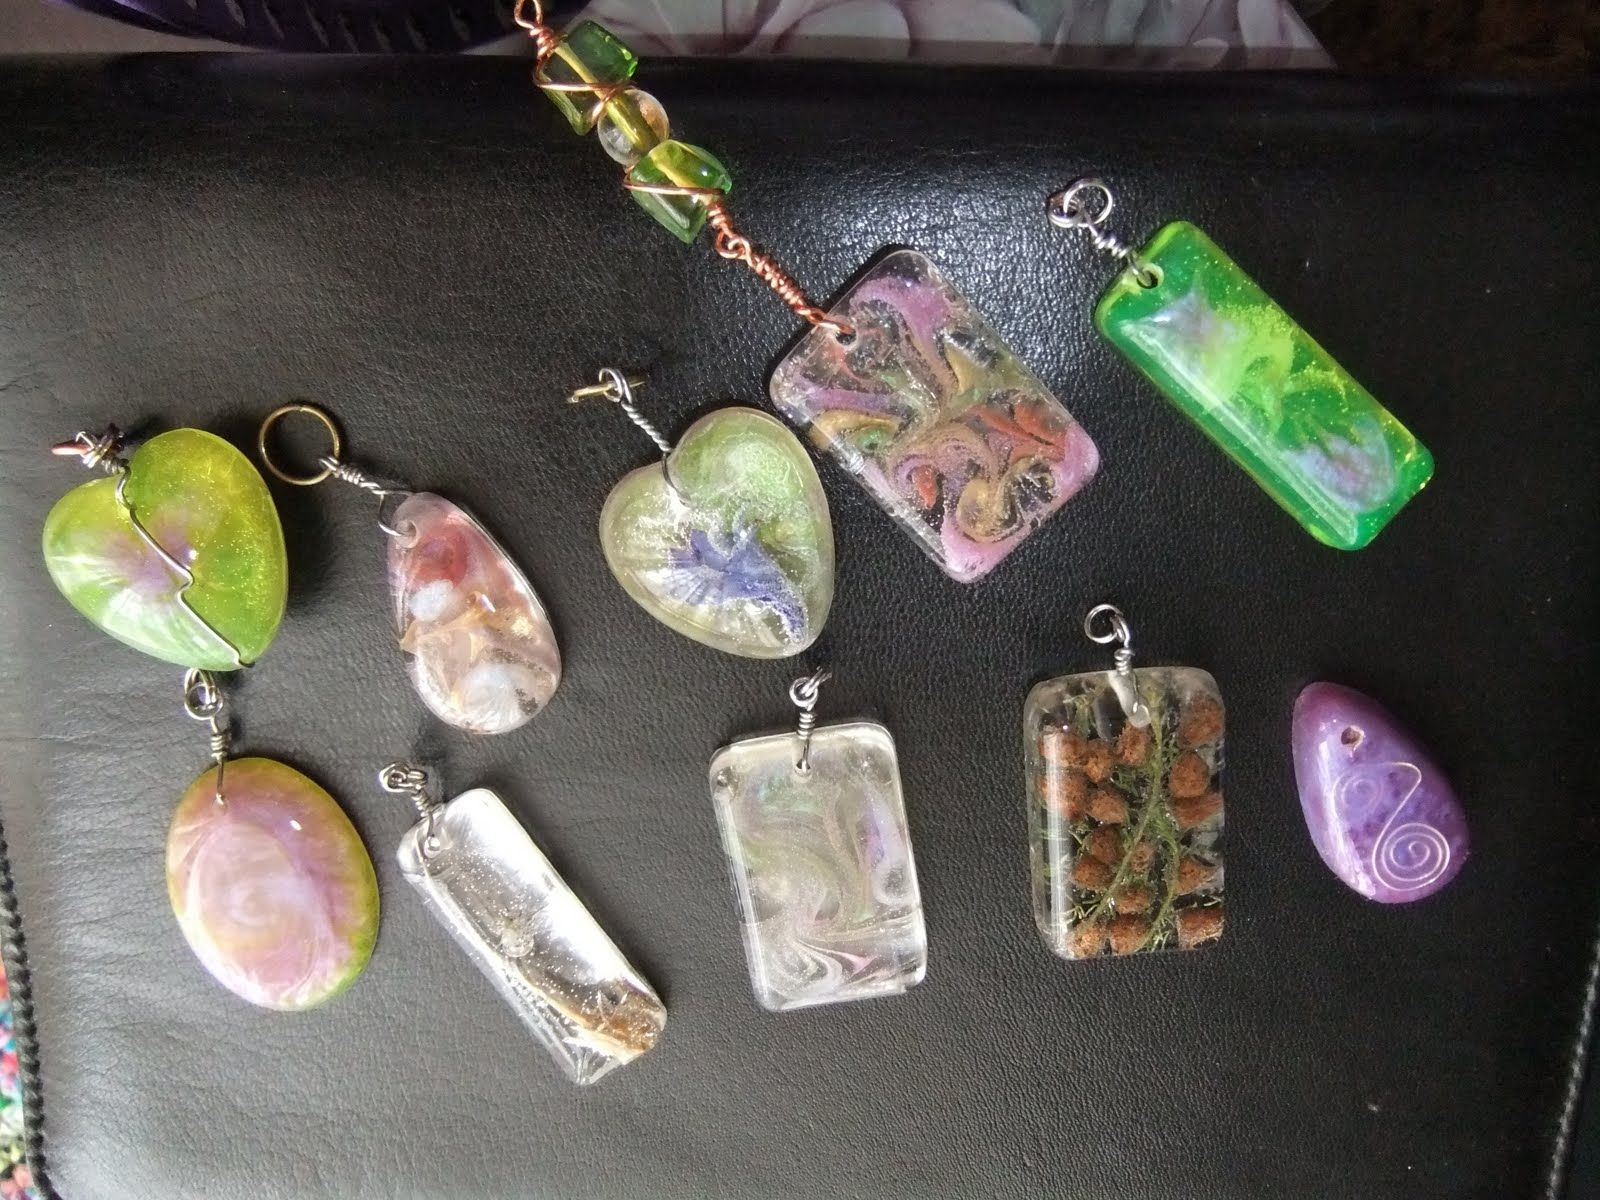 Instructions on how to create resin pendants with colored swirls instructions on how to create resin pendants with colored swirls supplies i get my supplies from barnes in australia httpbarnesc pinteres aloadofball Images